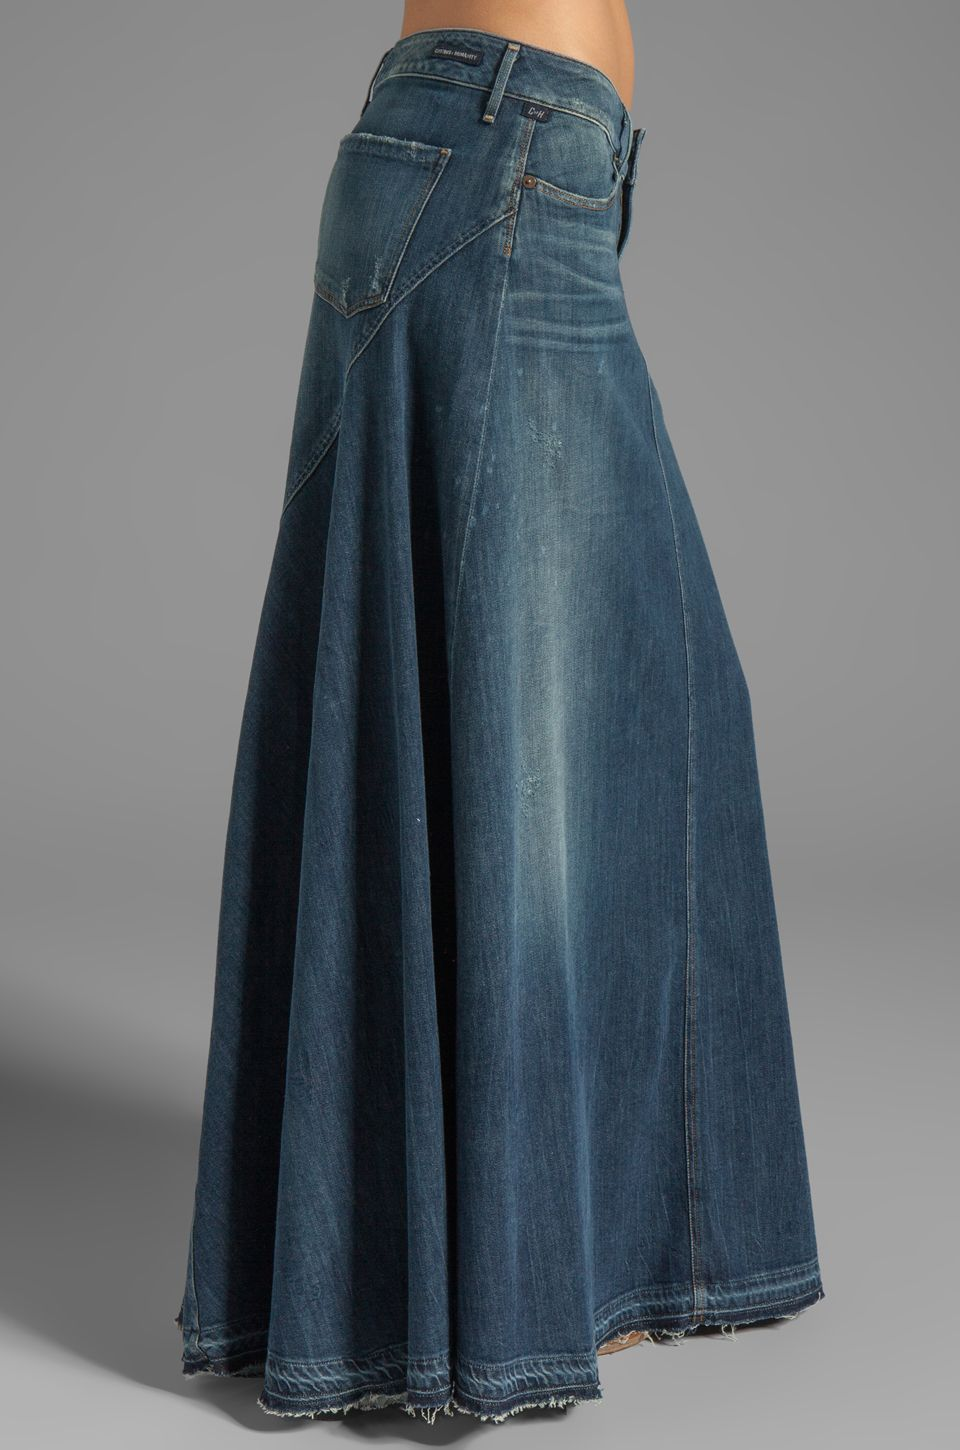 d3137c6606 Citizens of Humanity Jeans Anja Maxi Skirt in Dizzy | REVOLVE | diy ...